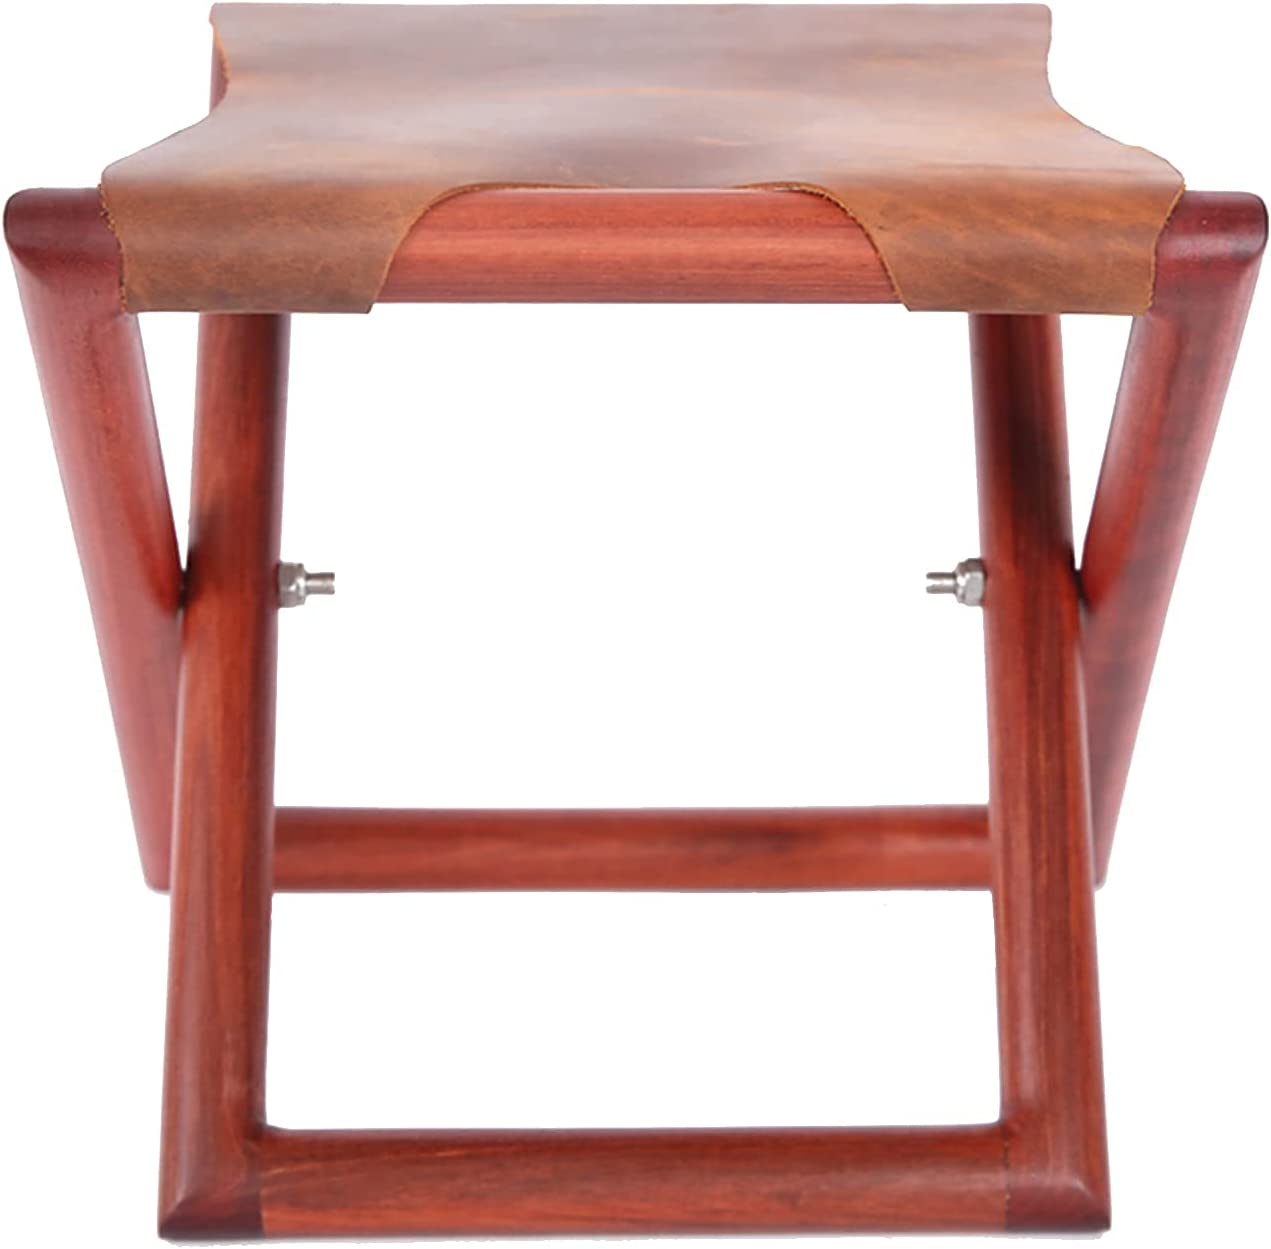 Los Angeles Mall Fishing Stool Folding Camping Wood Super Special SALE held Collapsible Ou